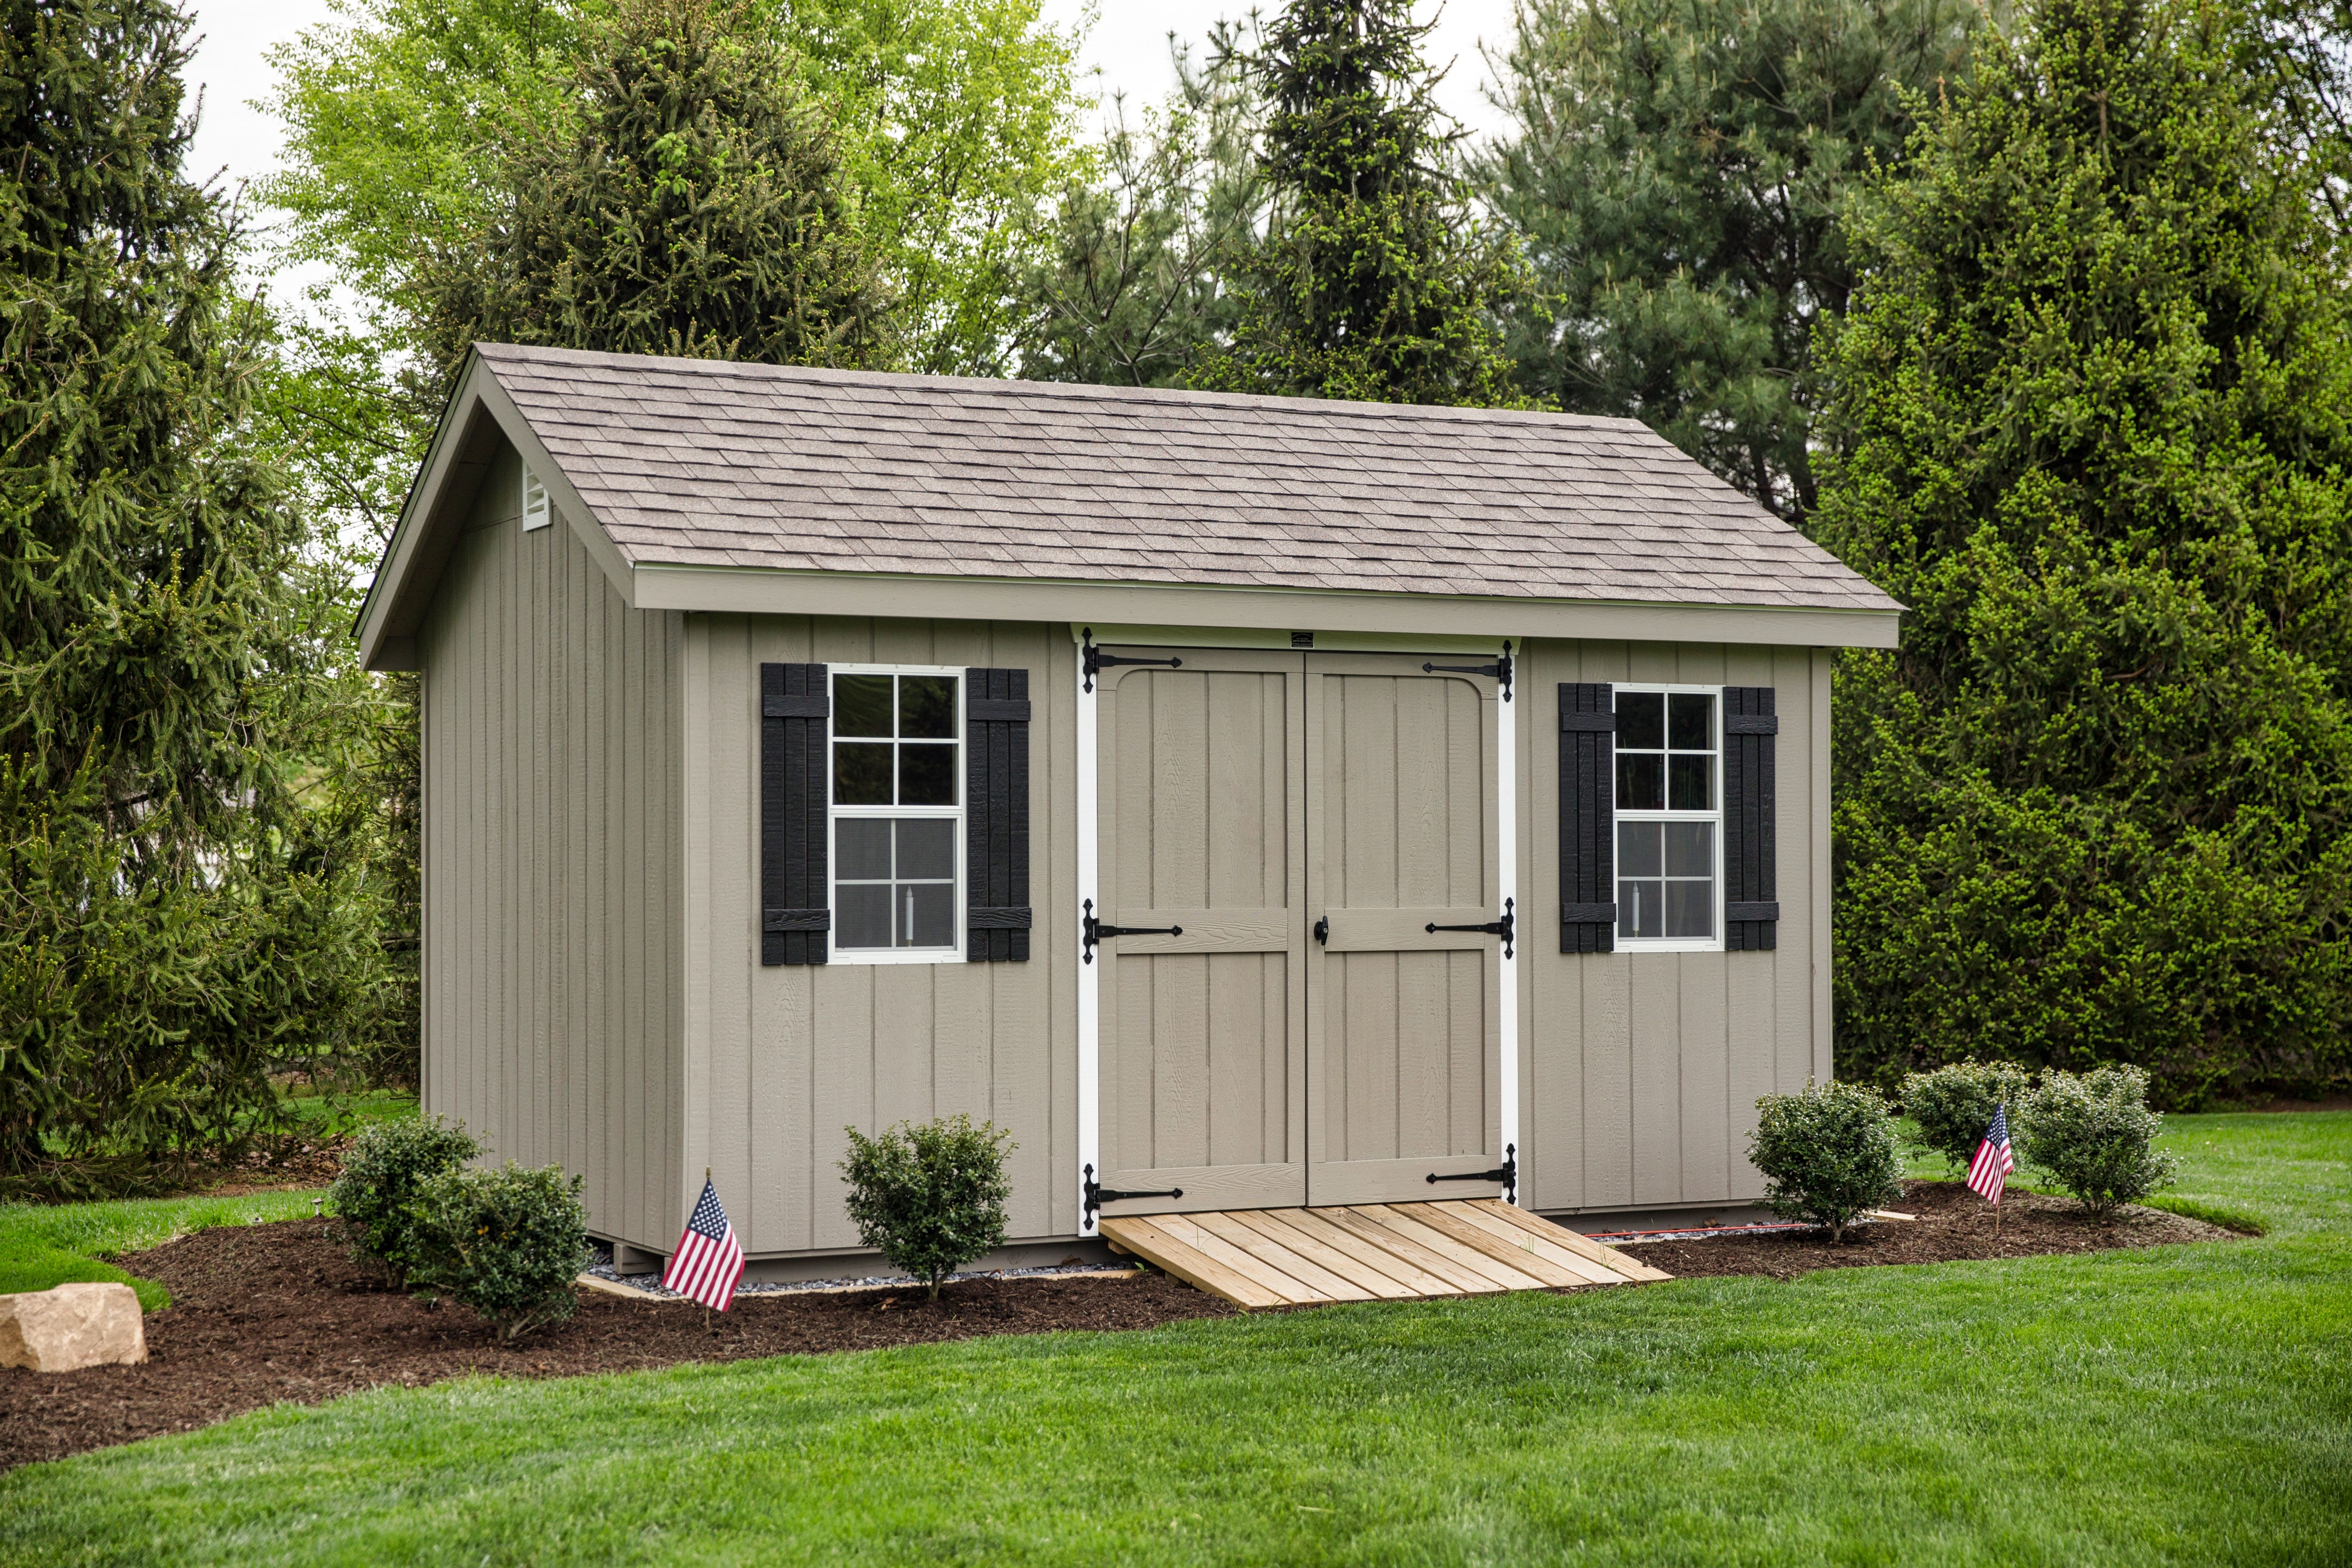 Pin By Kathi Greene On Shed Building A Shed Wooden Sheds Shed